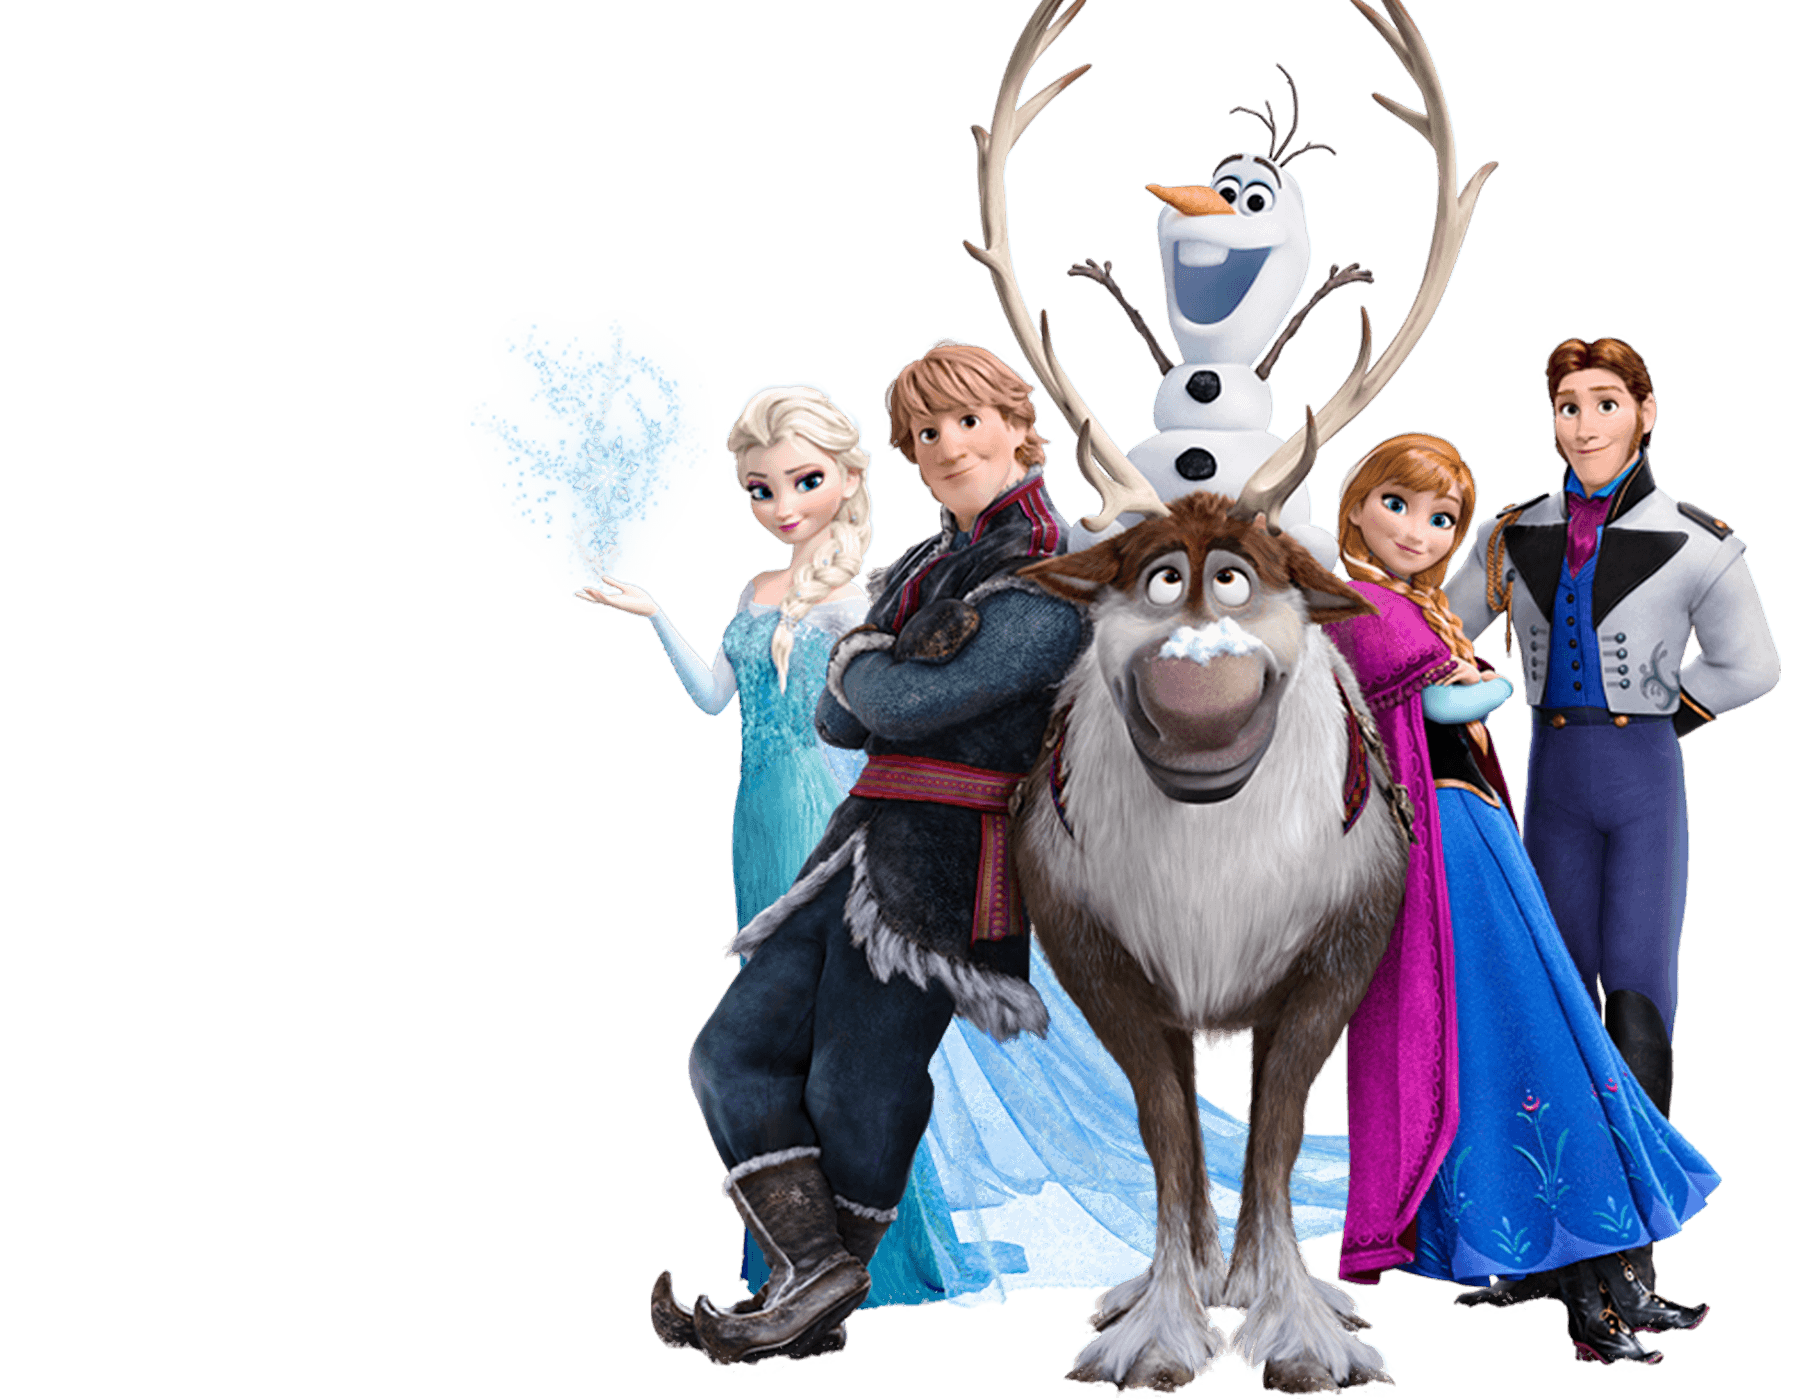 Frozen Png Images Free Download